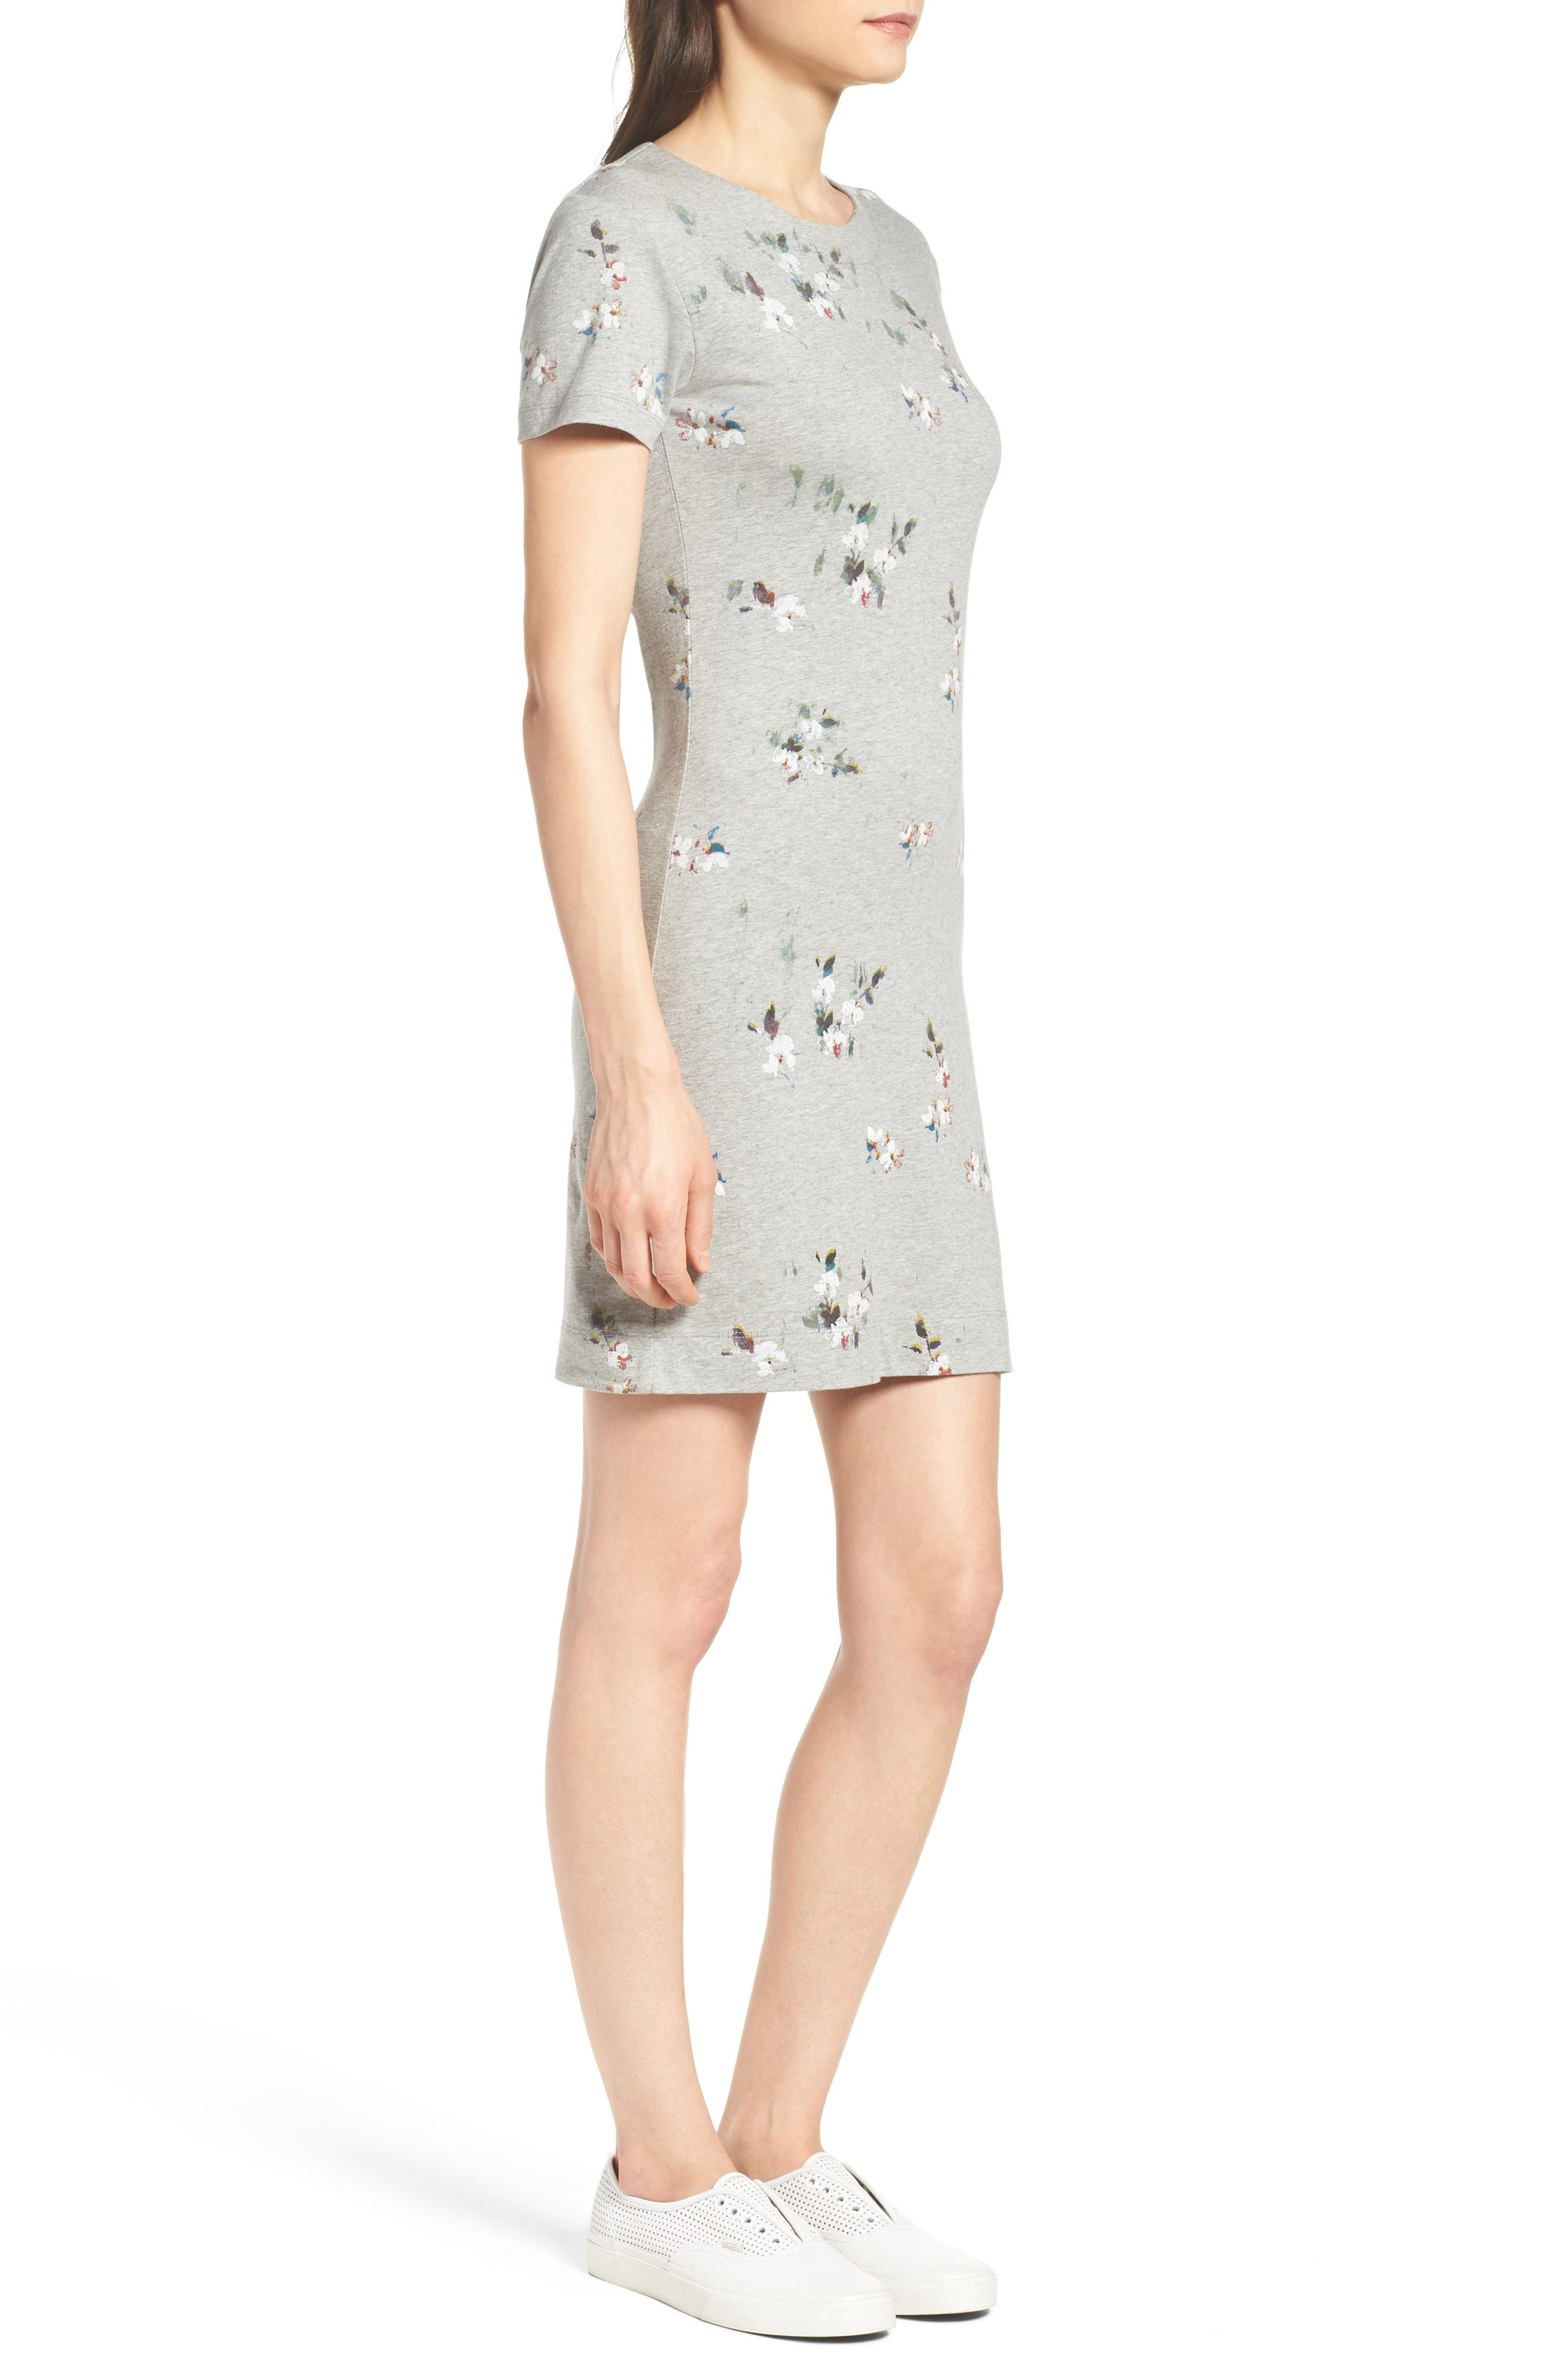 Blossom T-Shirt Dress,                             Alternate thumbnail 3, color,                             Grey